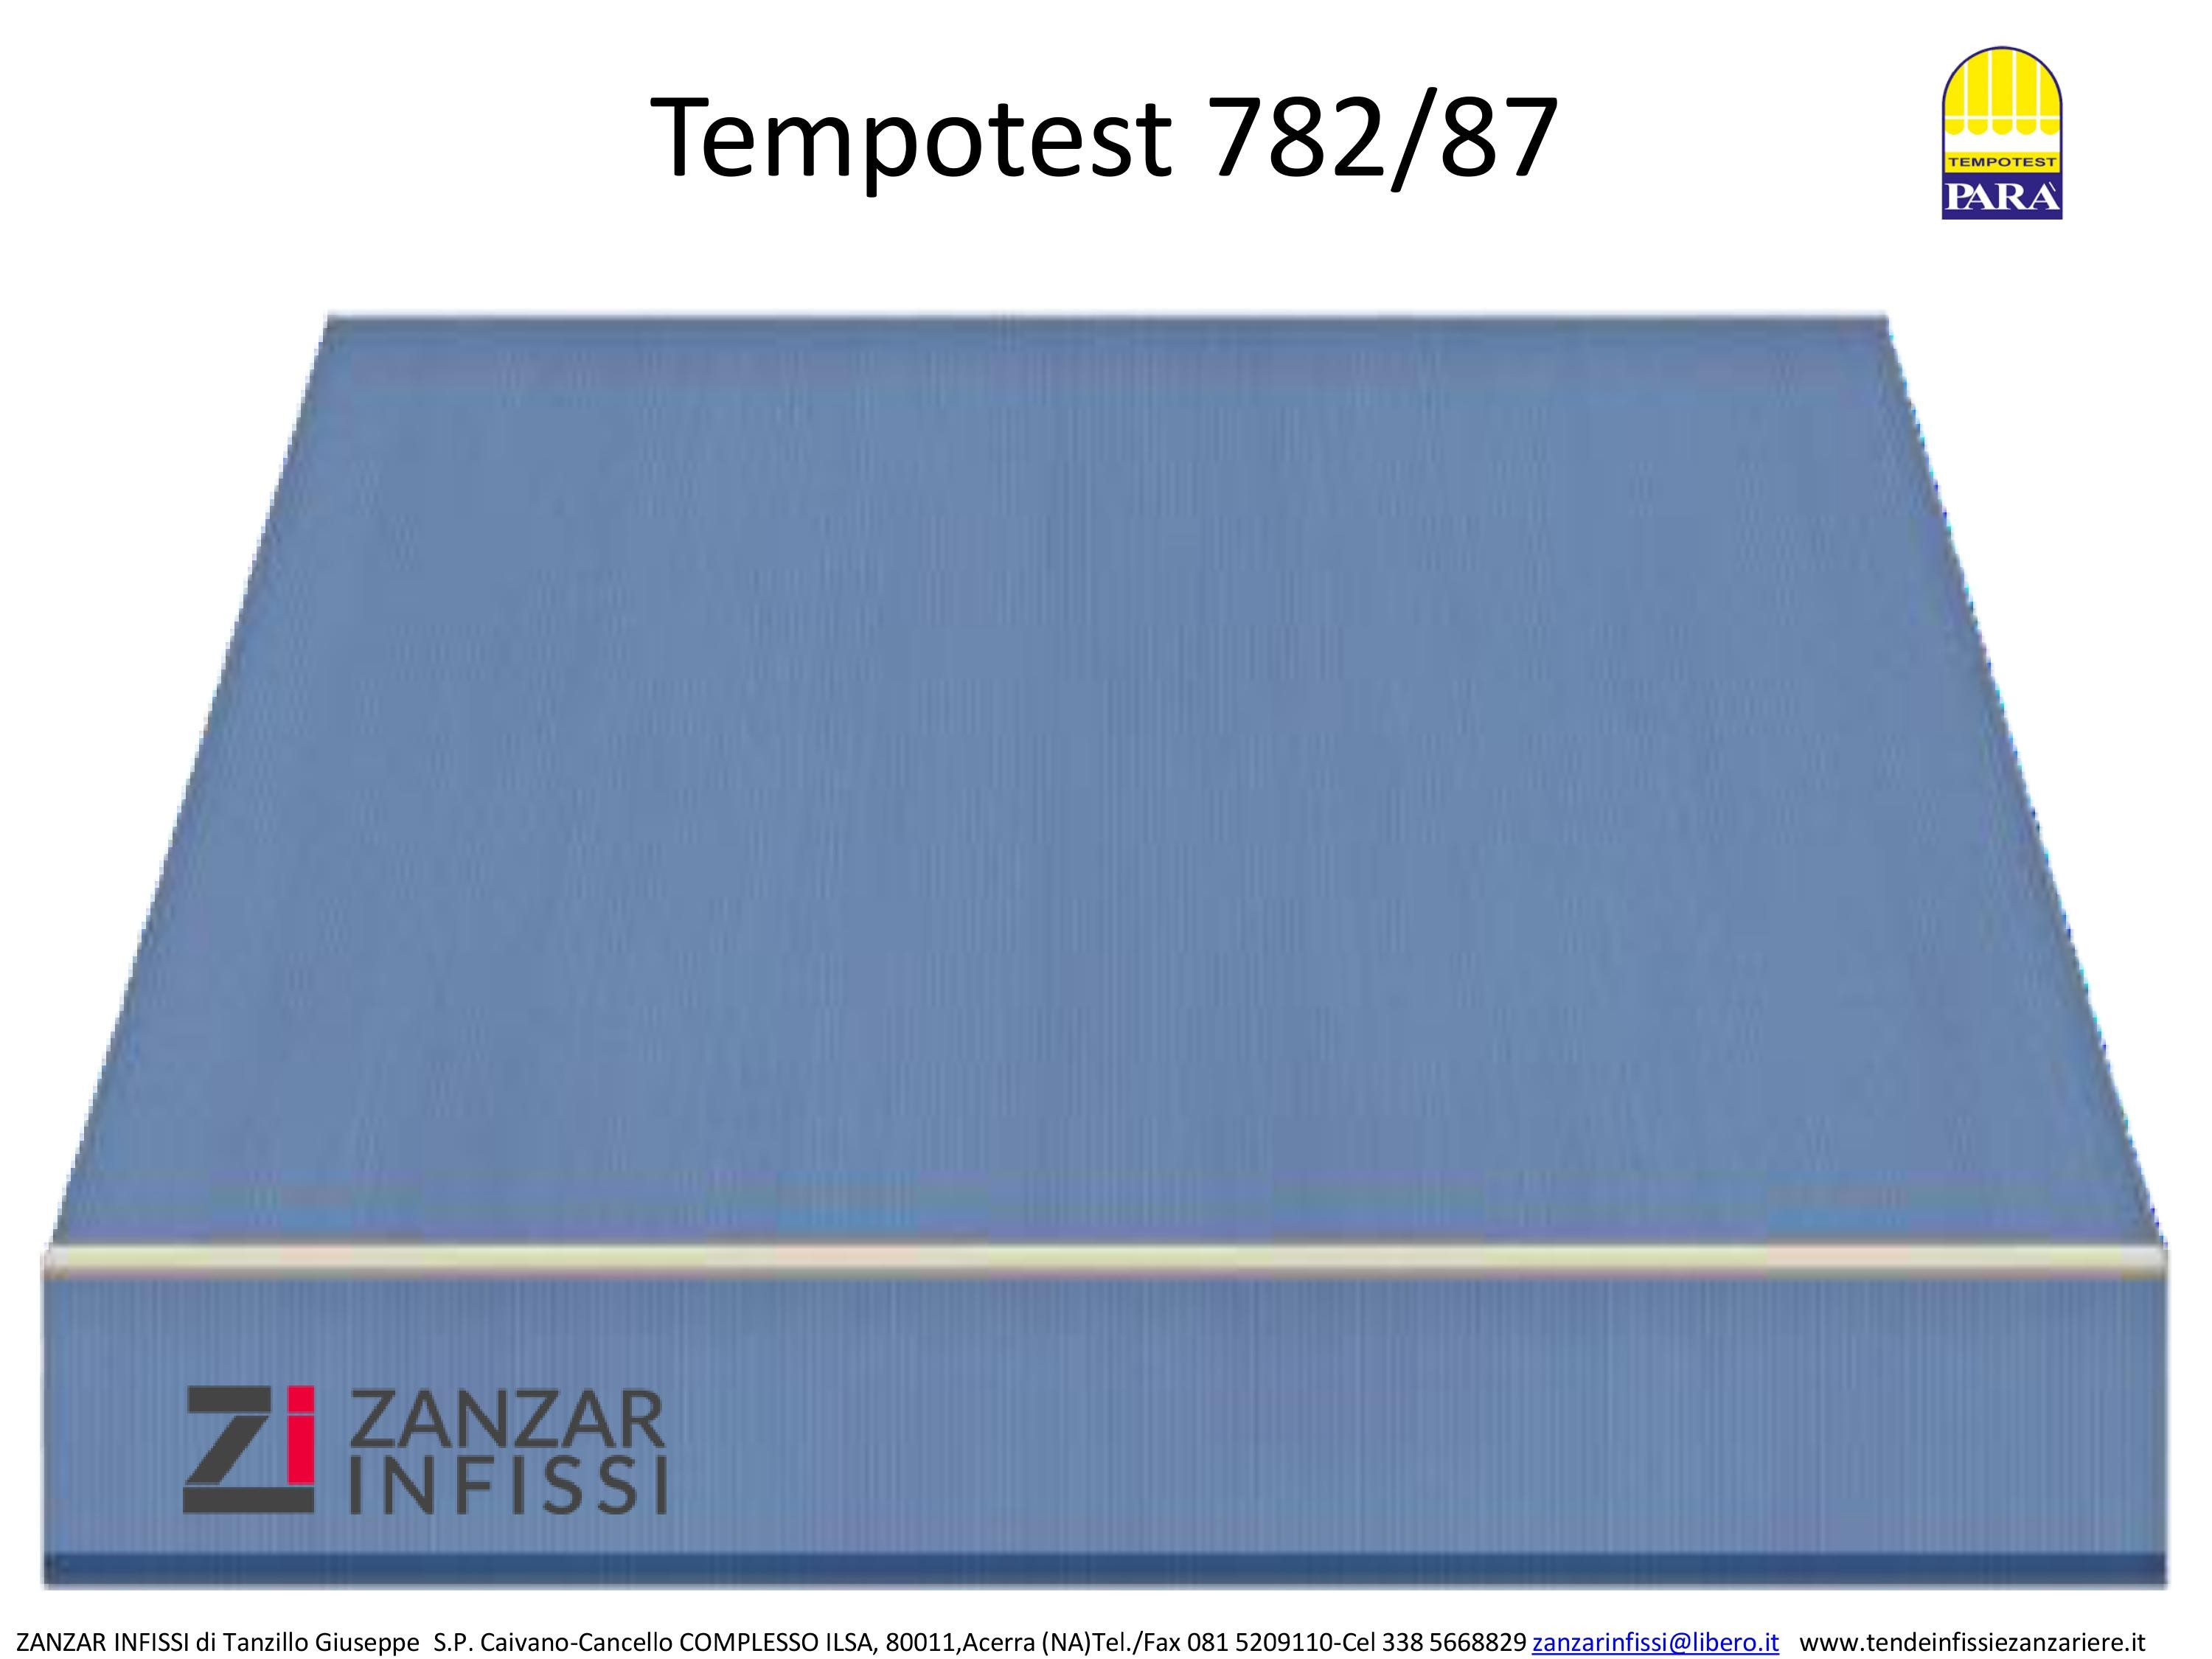 Tempotest 782/87